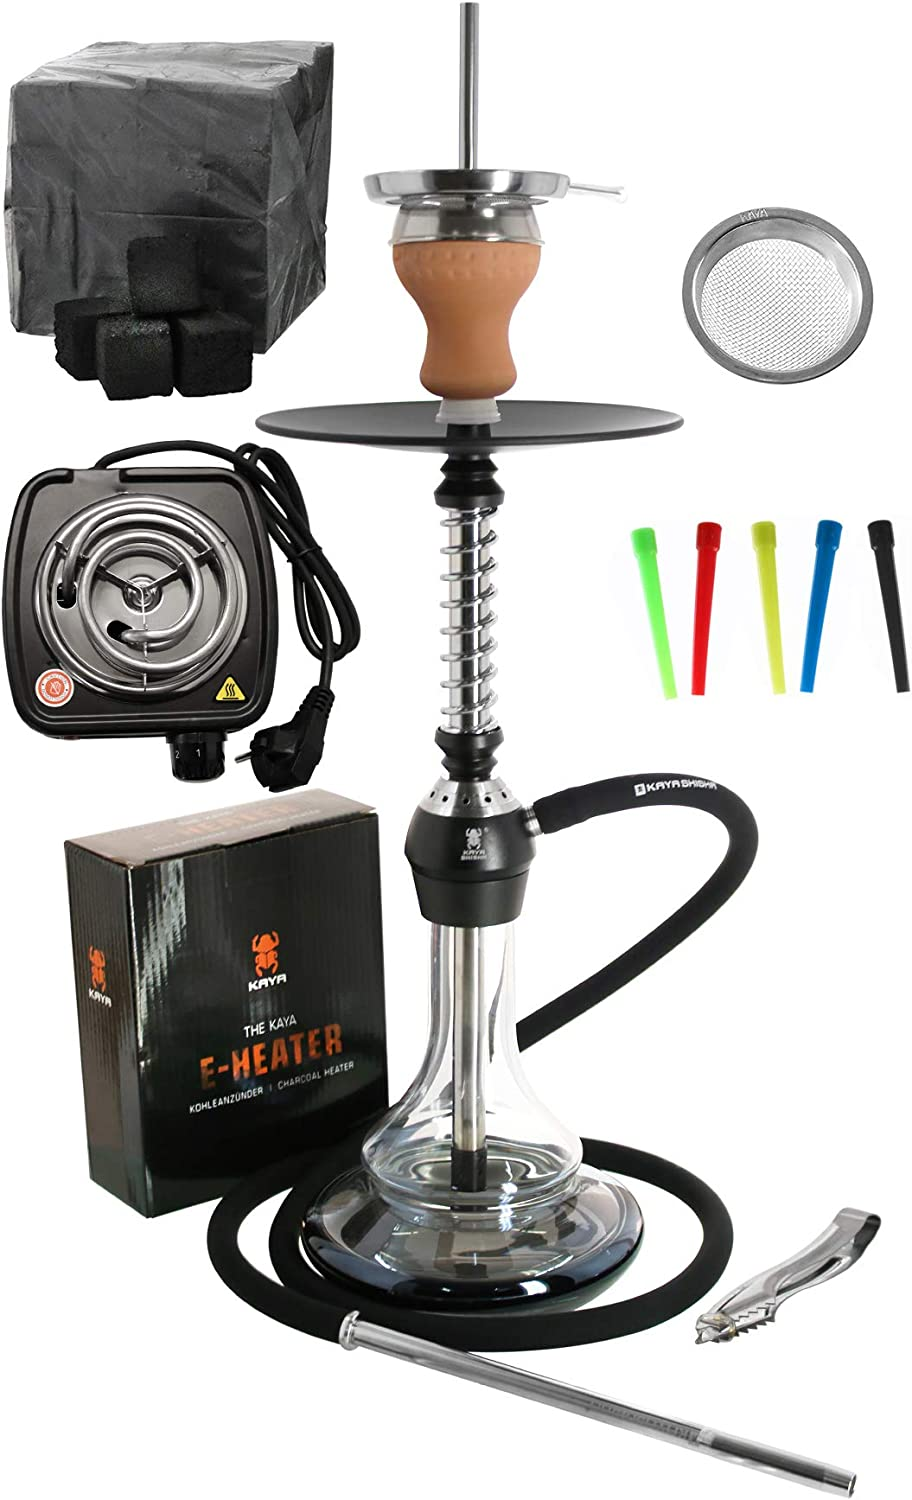 ELOX Eco 580 Twist Set con cocina eléctrica carbón de cachimba boquillas desechables pinzas gestor de calor (Blackground)